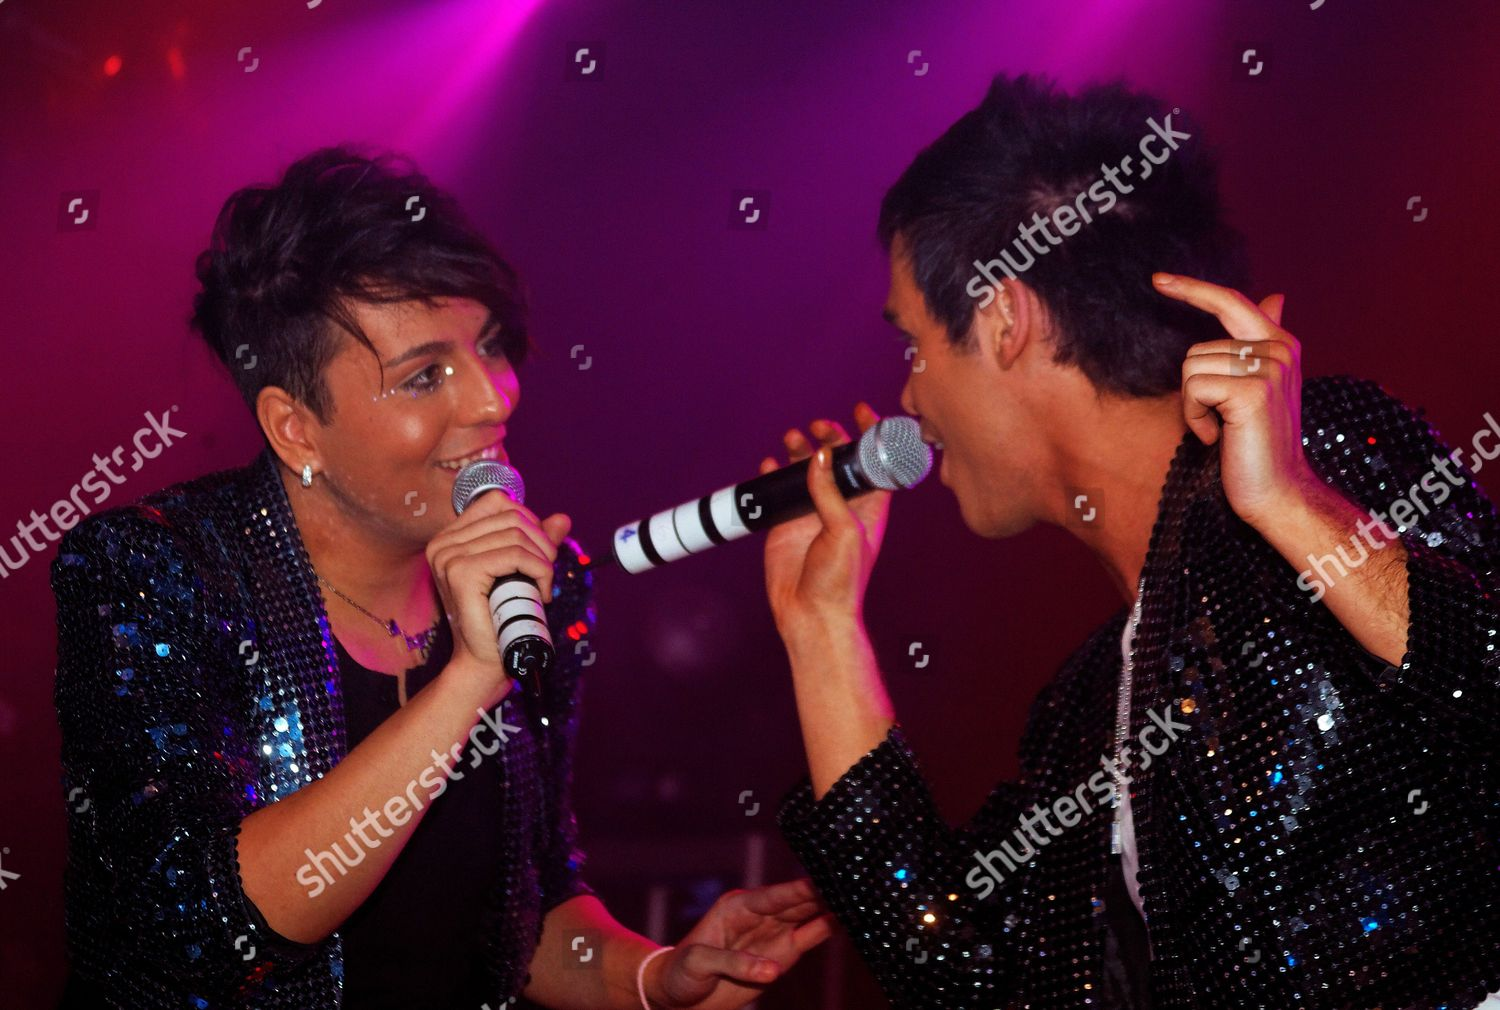 Stock photo of Diva Fever in concert at G-A-Y, Heaven nightclub, London, Britain - 24 Oct 2010